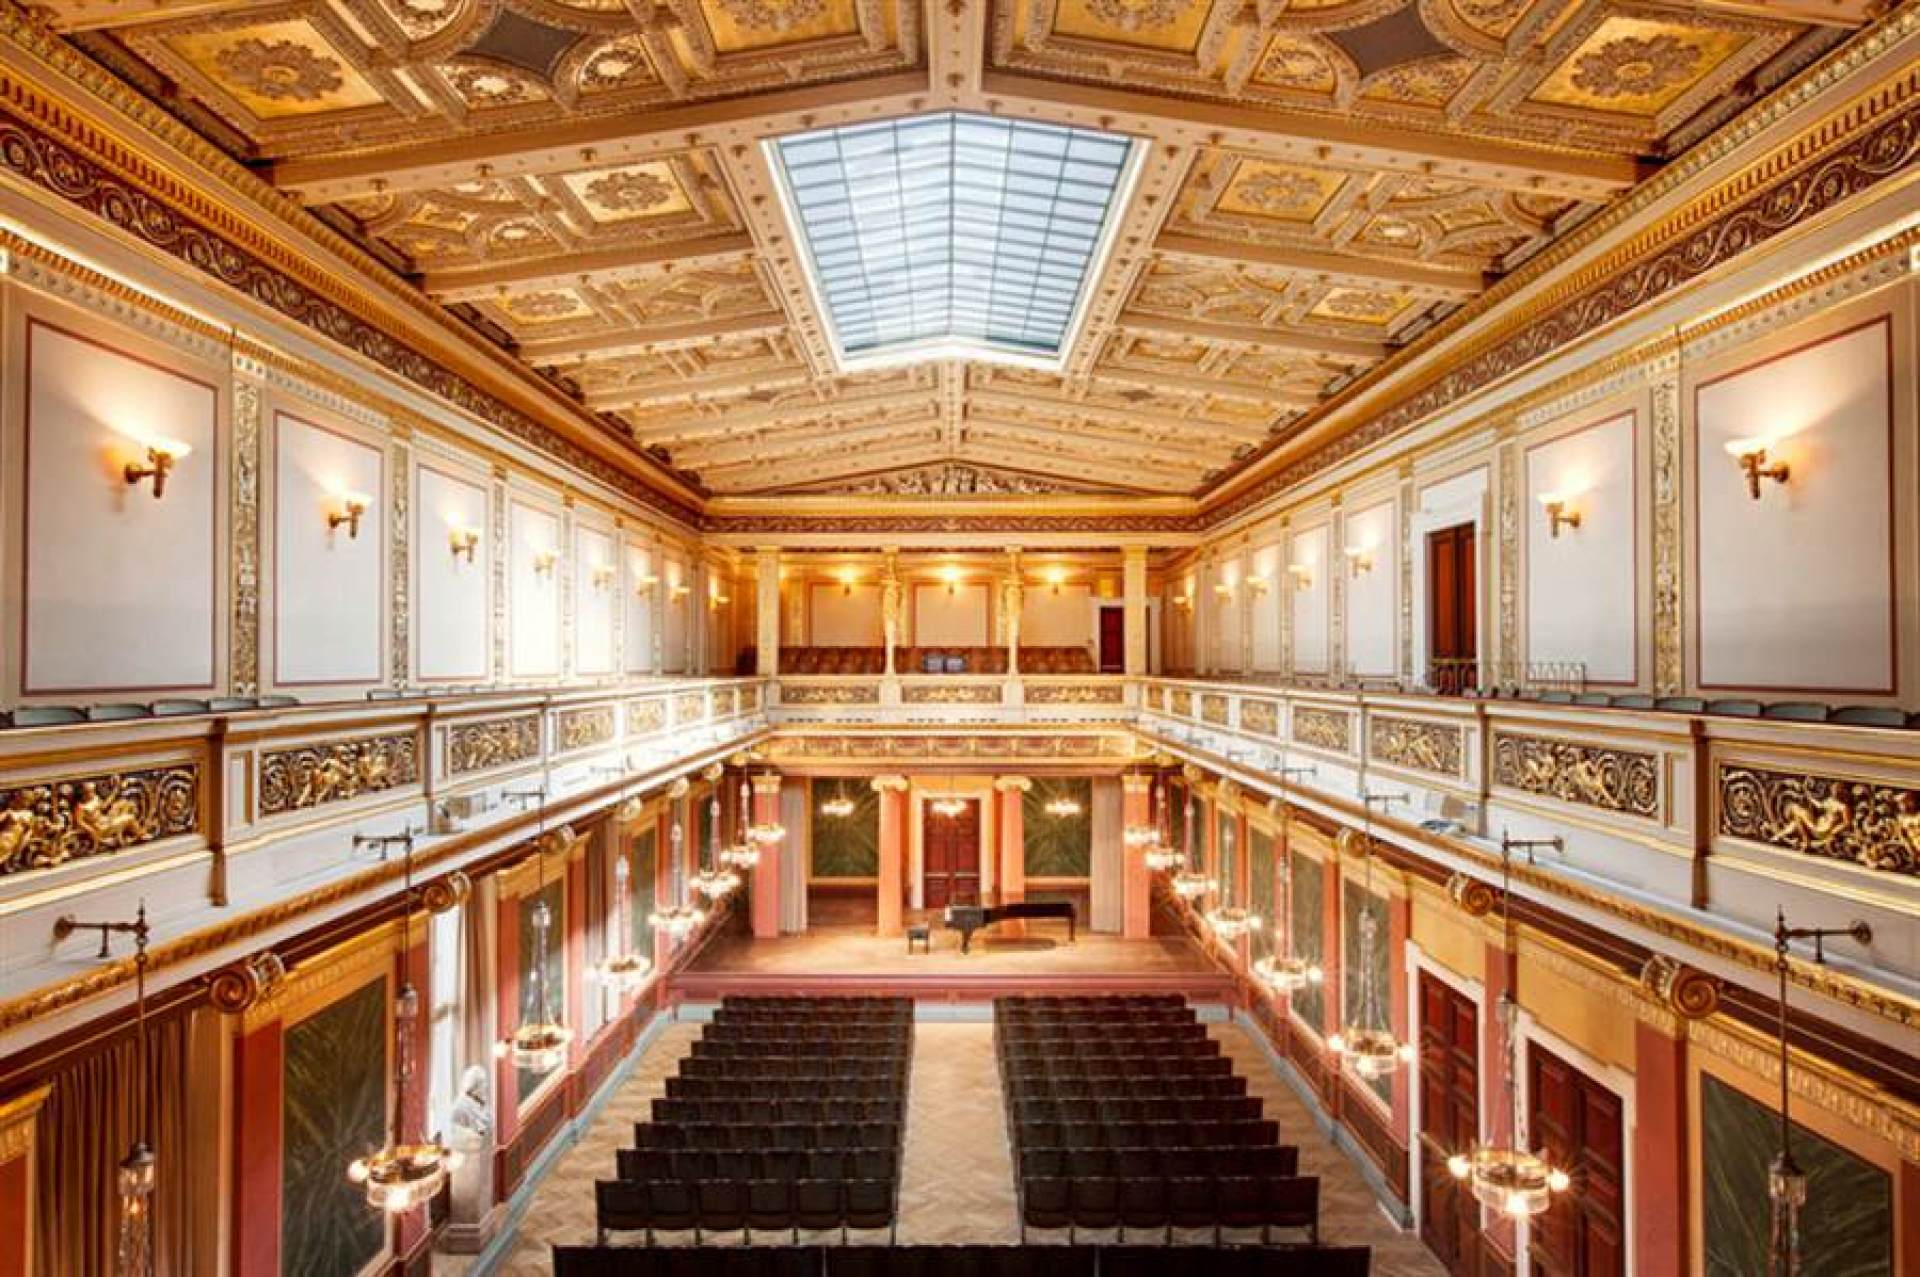 VIENNESE CLASSIC IN THE MUSIKVEREIN